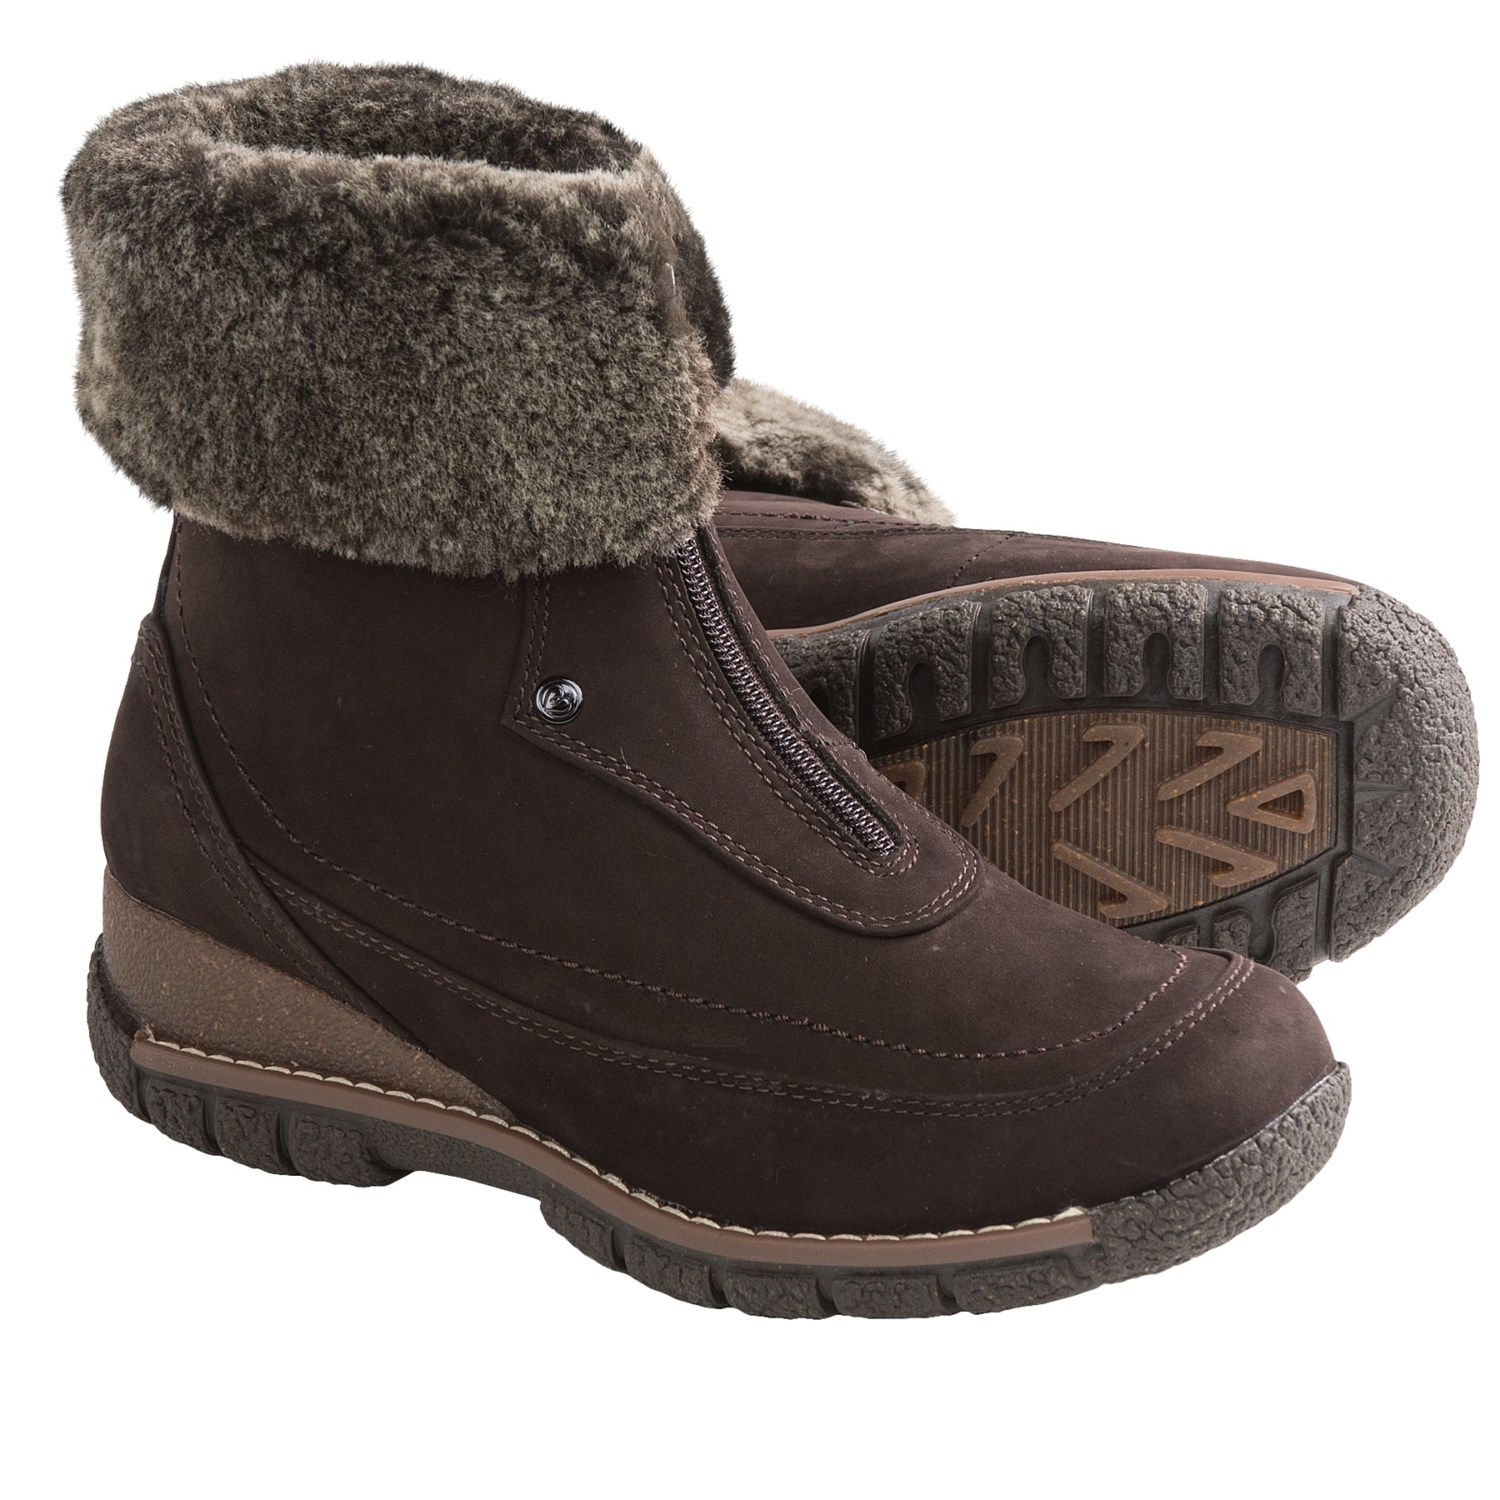 Blondo Avril Winter Boots (For Women) 5634P - Save 35%